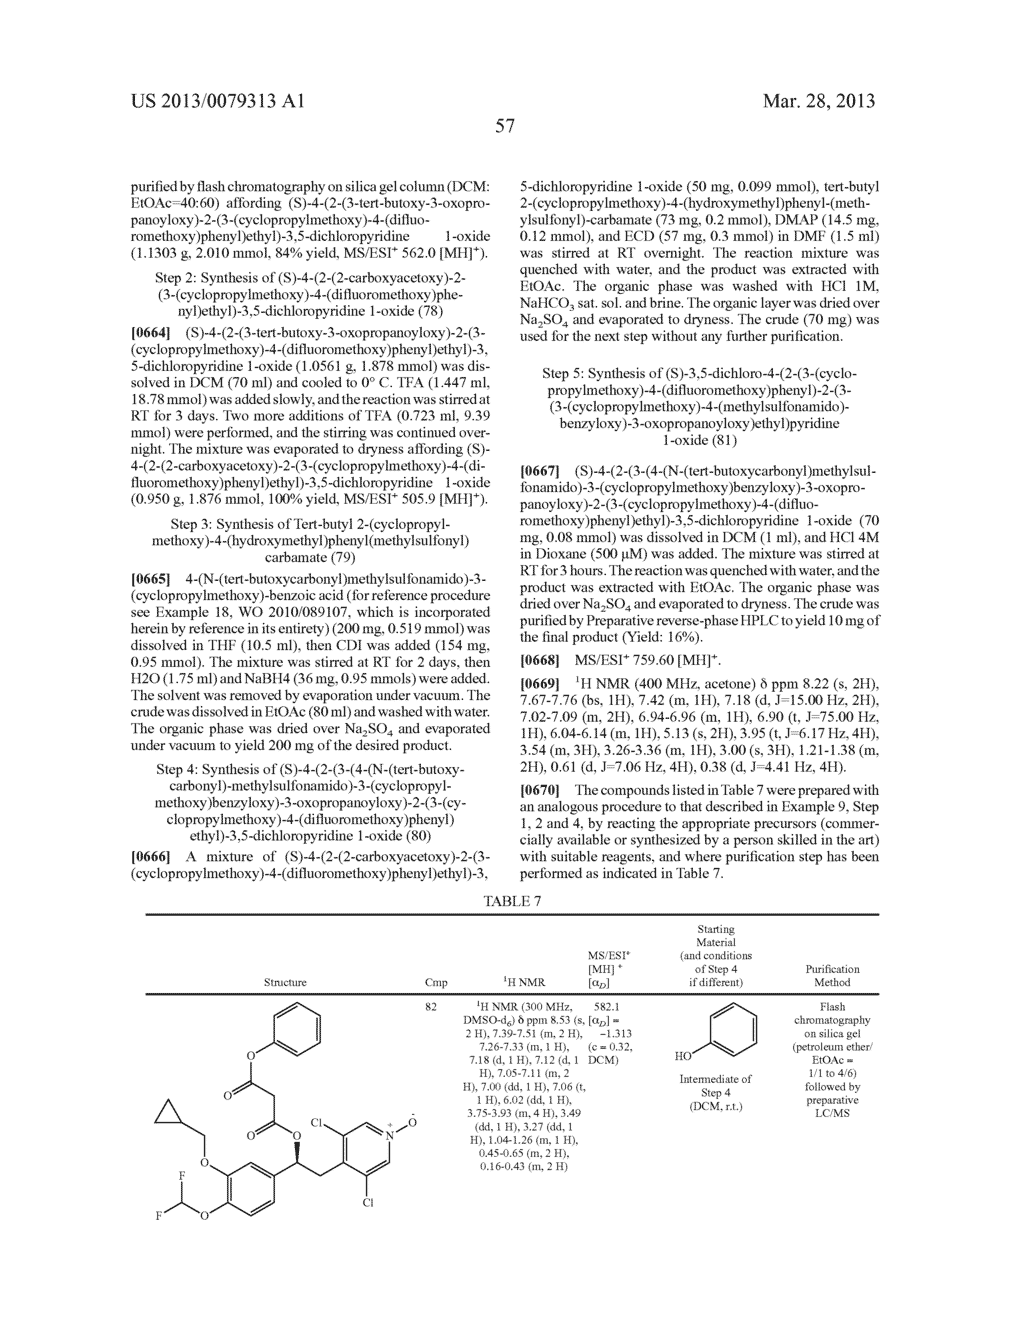 DERIVATIVES OF 1-PHENYL-2-PYRIDINYL ALKYL ALCOHOLS AS PHOSPHODIESTERASE     INHIBITORS - diagram, schematic, and image 58